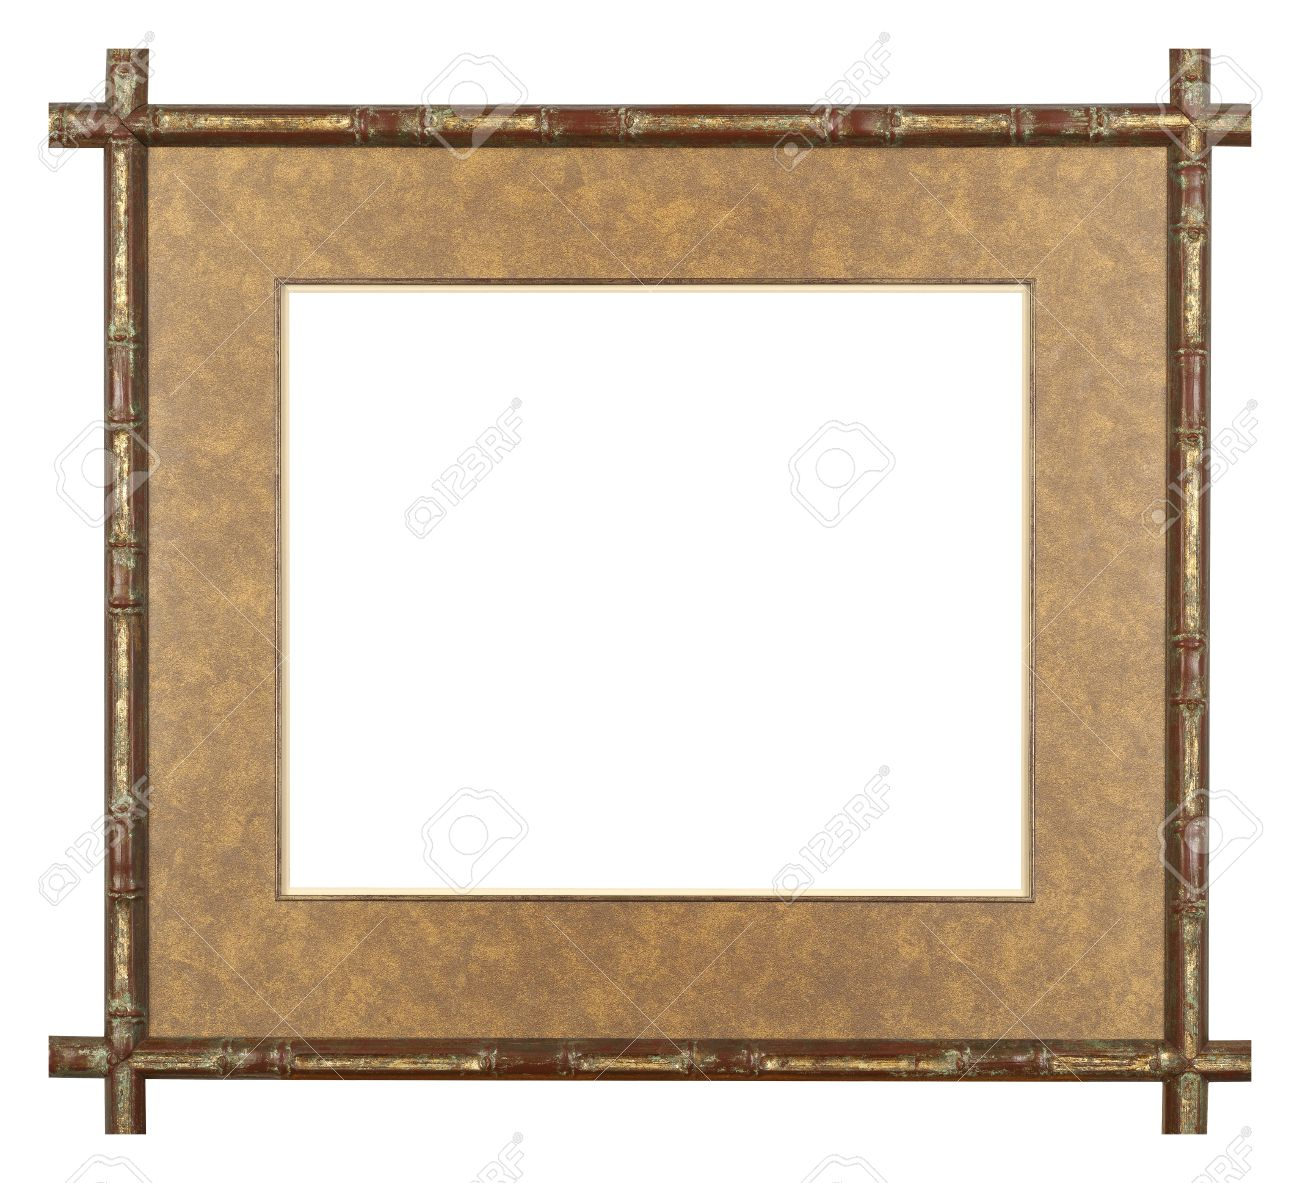 Art Picture Frame Bamboo Golden Stock Photo, Picture And Royalty ...